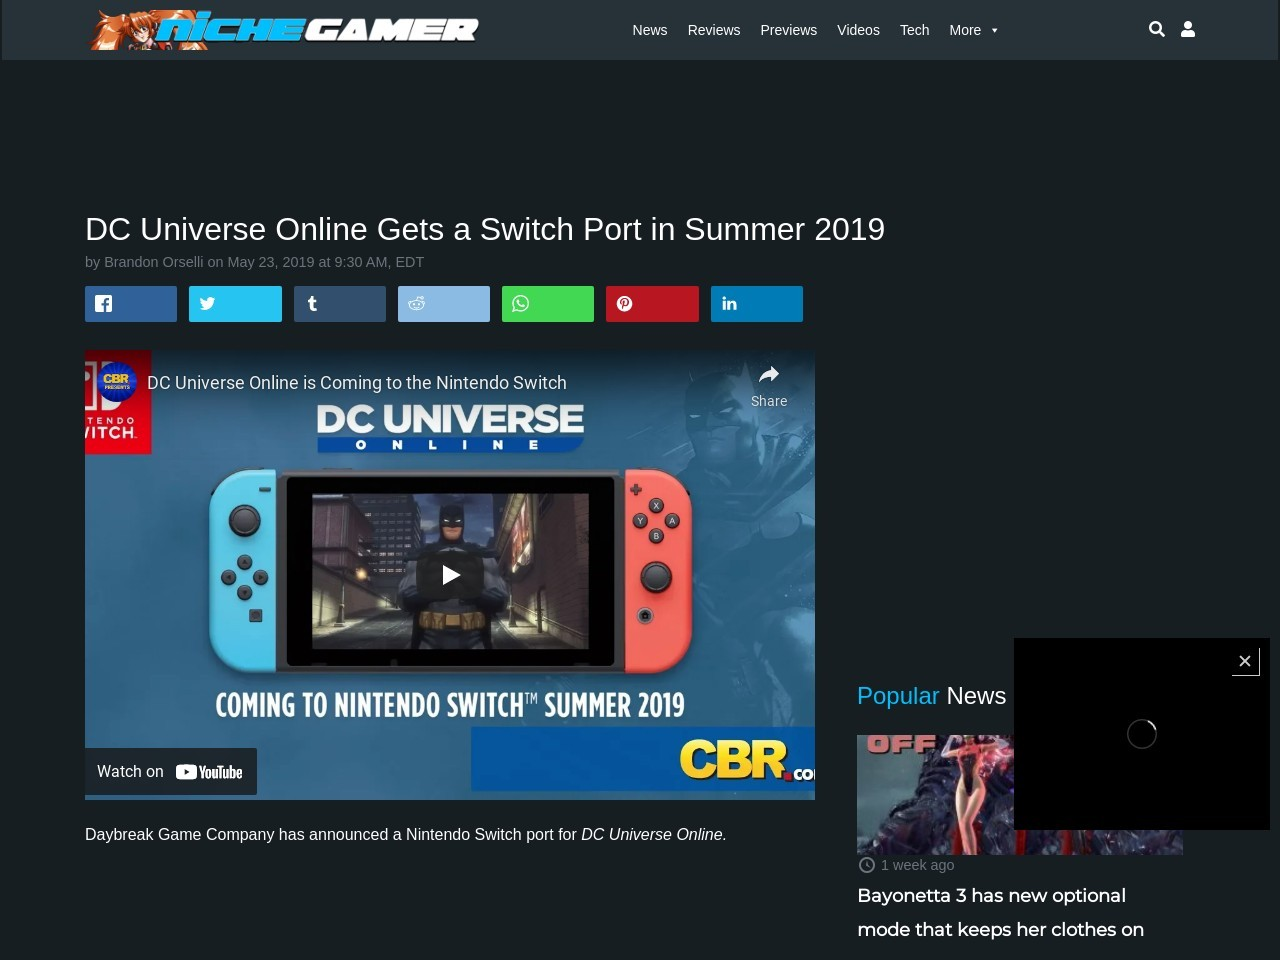 DC Universe Online Gets a Switch Port in Summer 2019